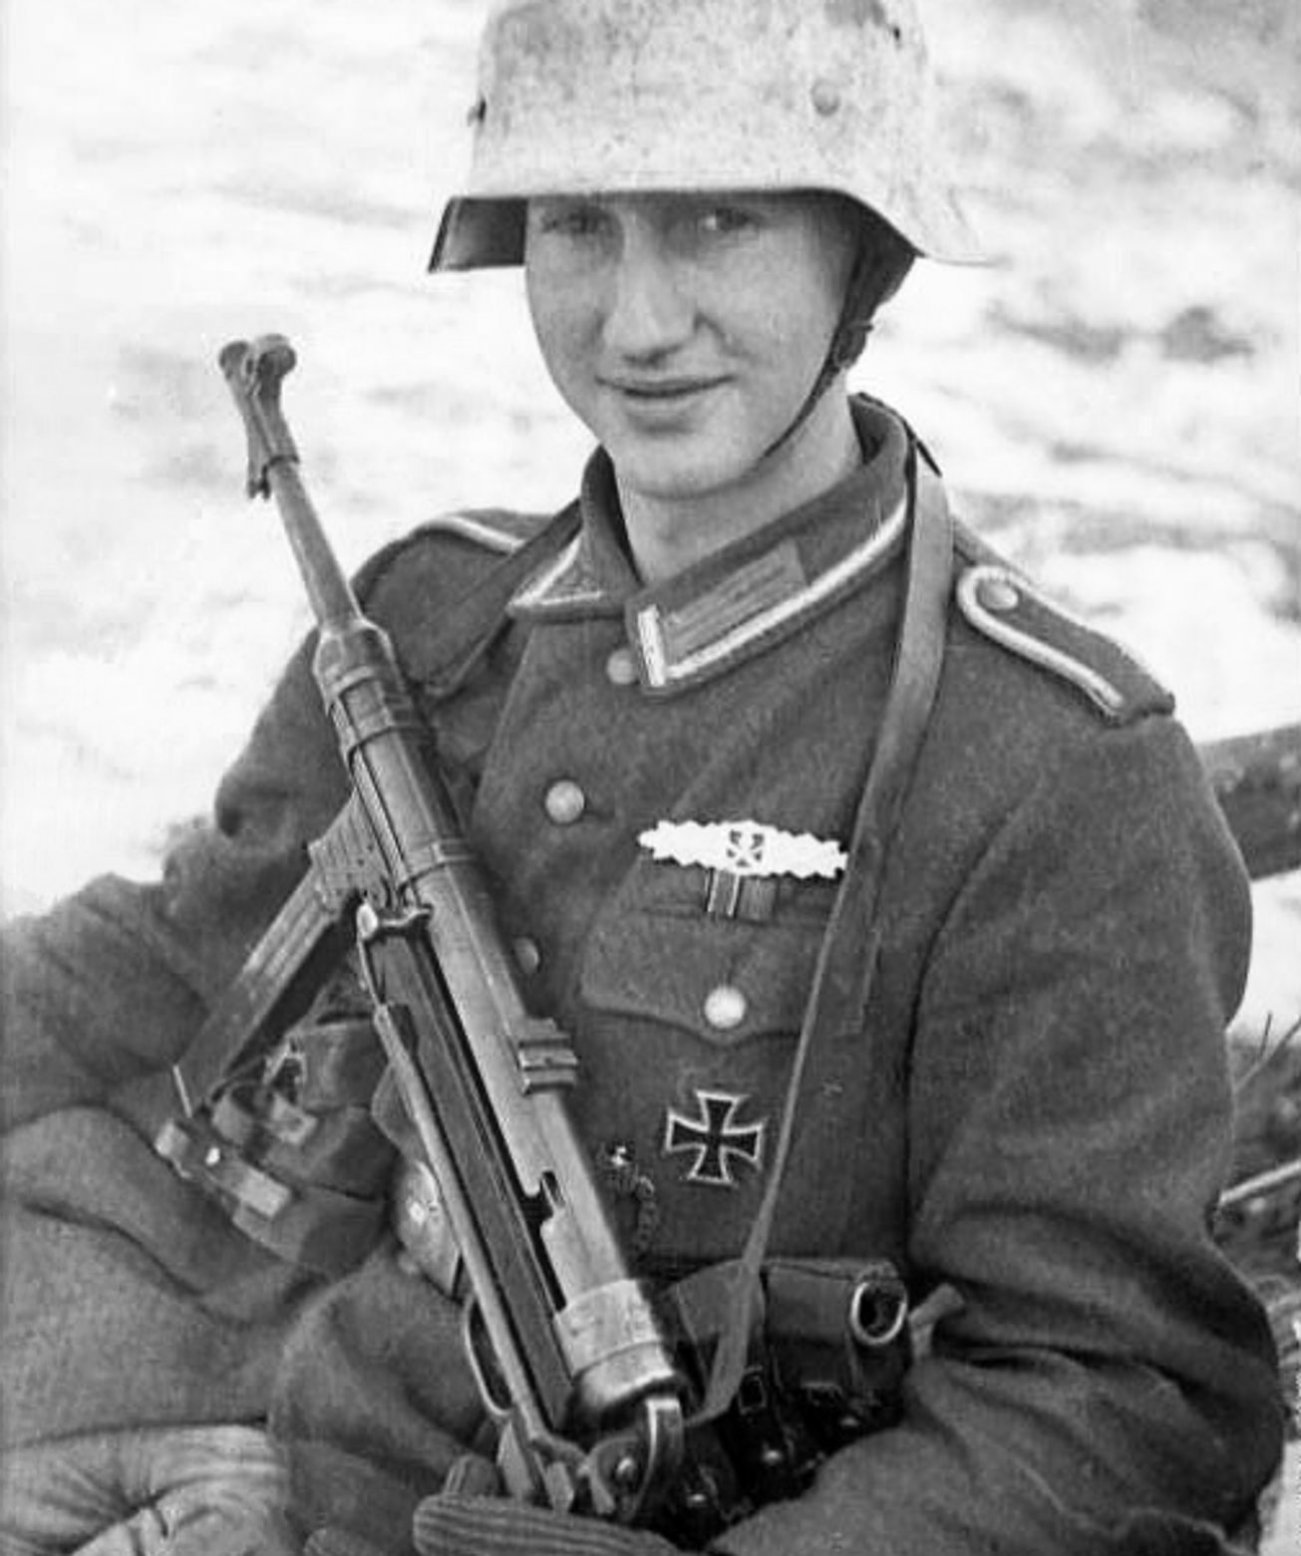 By Bundesarchiv, Bild 101I-278-0899-26 / Wehmeyer / CC-BY-SA 3.0, CC BY-SA 3.0 de, https://commons.wikimedia.org/w/index.php?curid=5410715